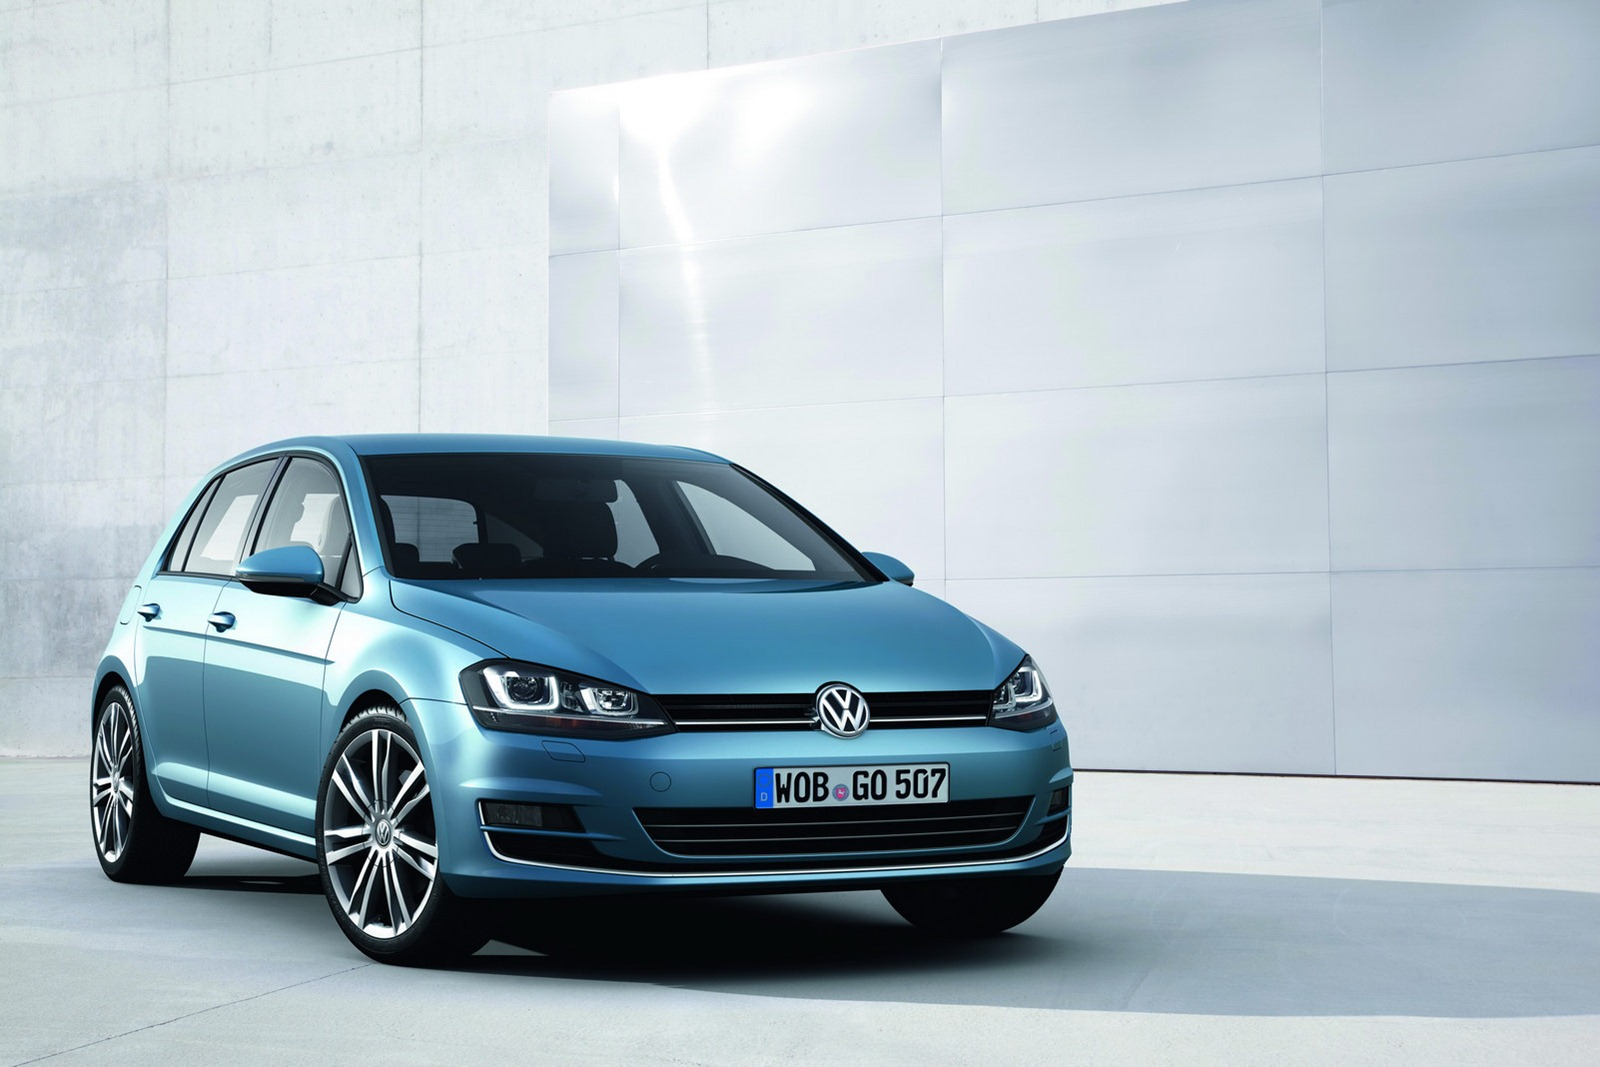 volkswagen golf vii car gallery premium hatchbacks autocar india. Black Bedroom Furniture Sets. Home Design Ideas